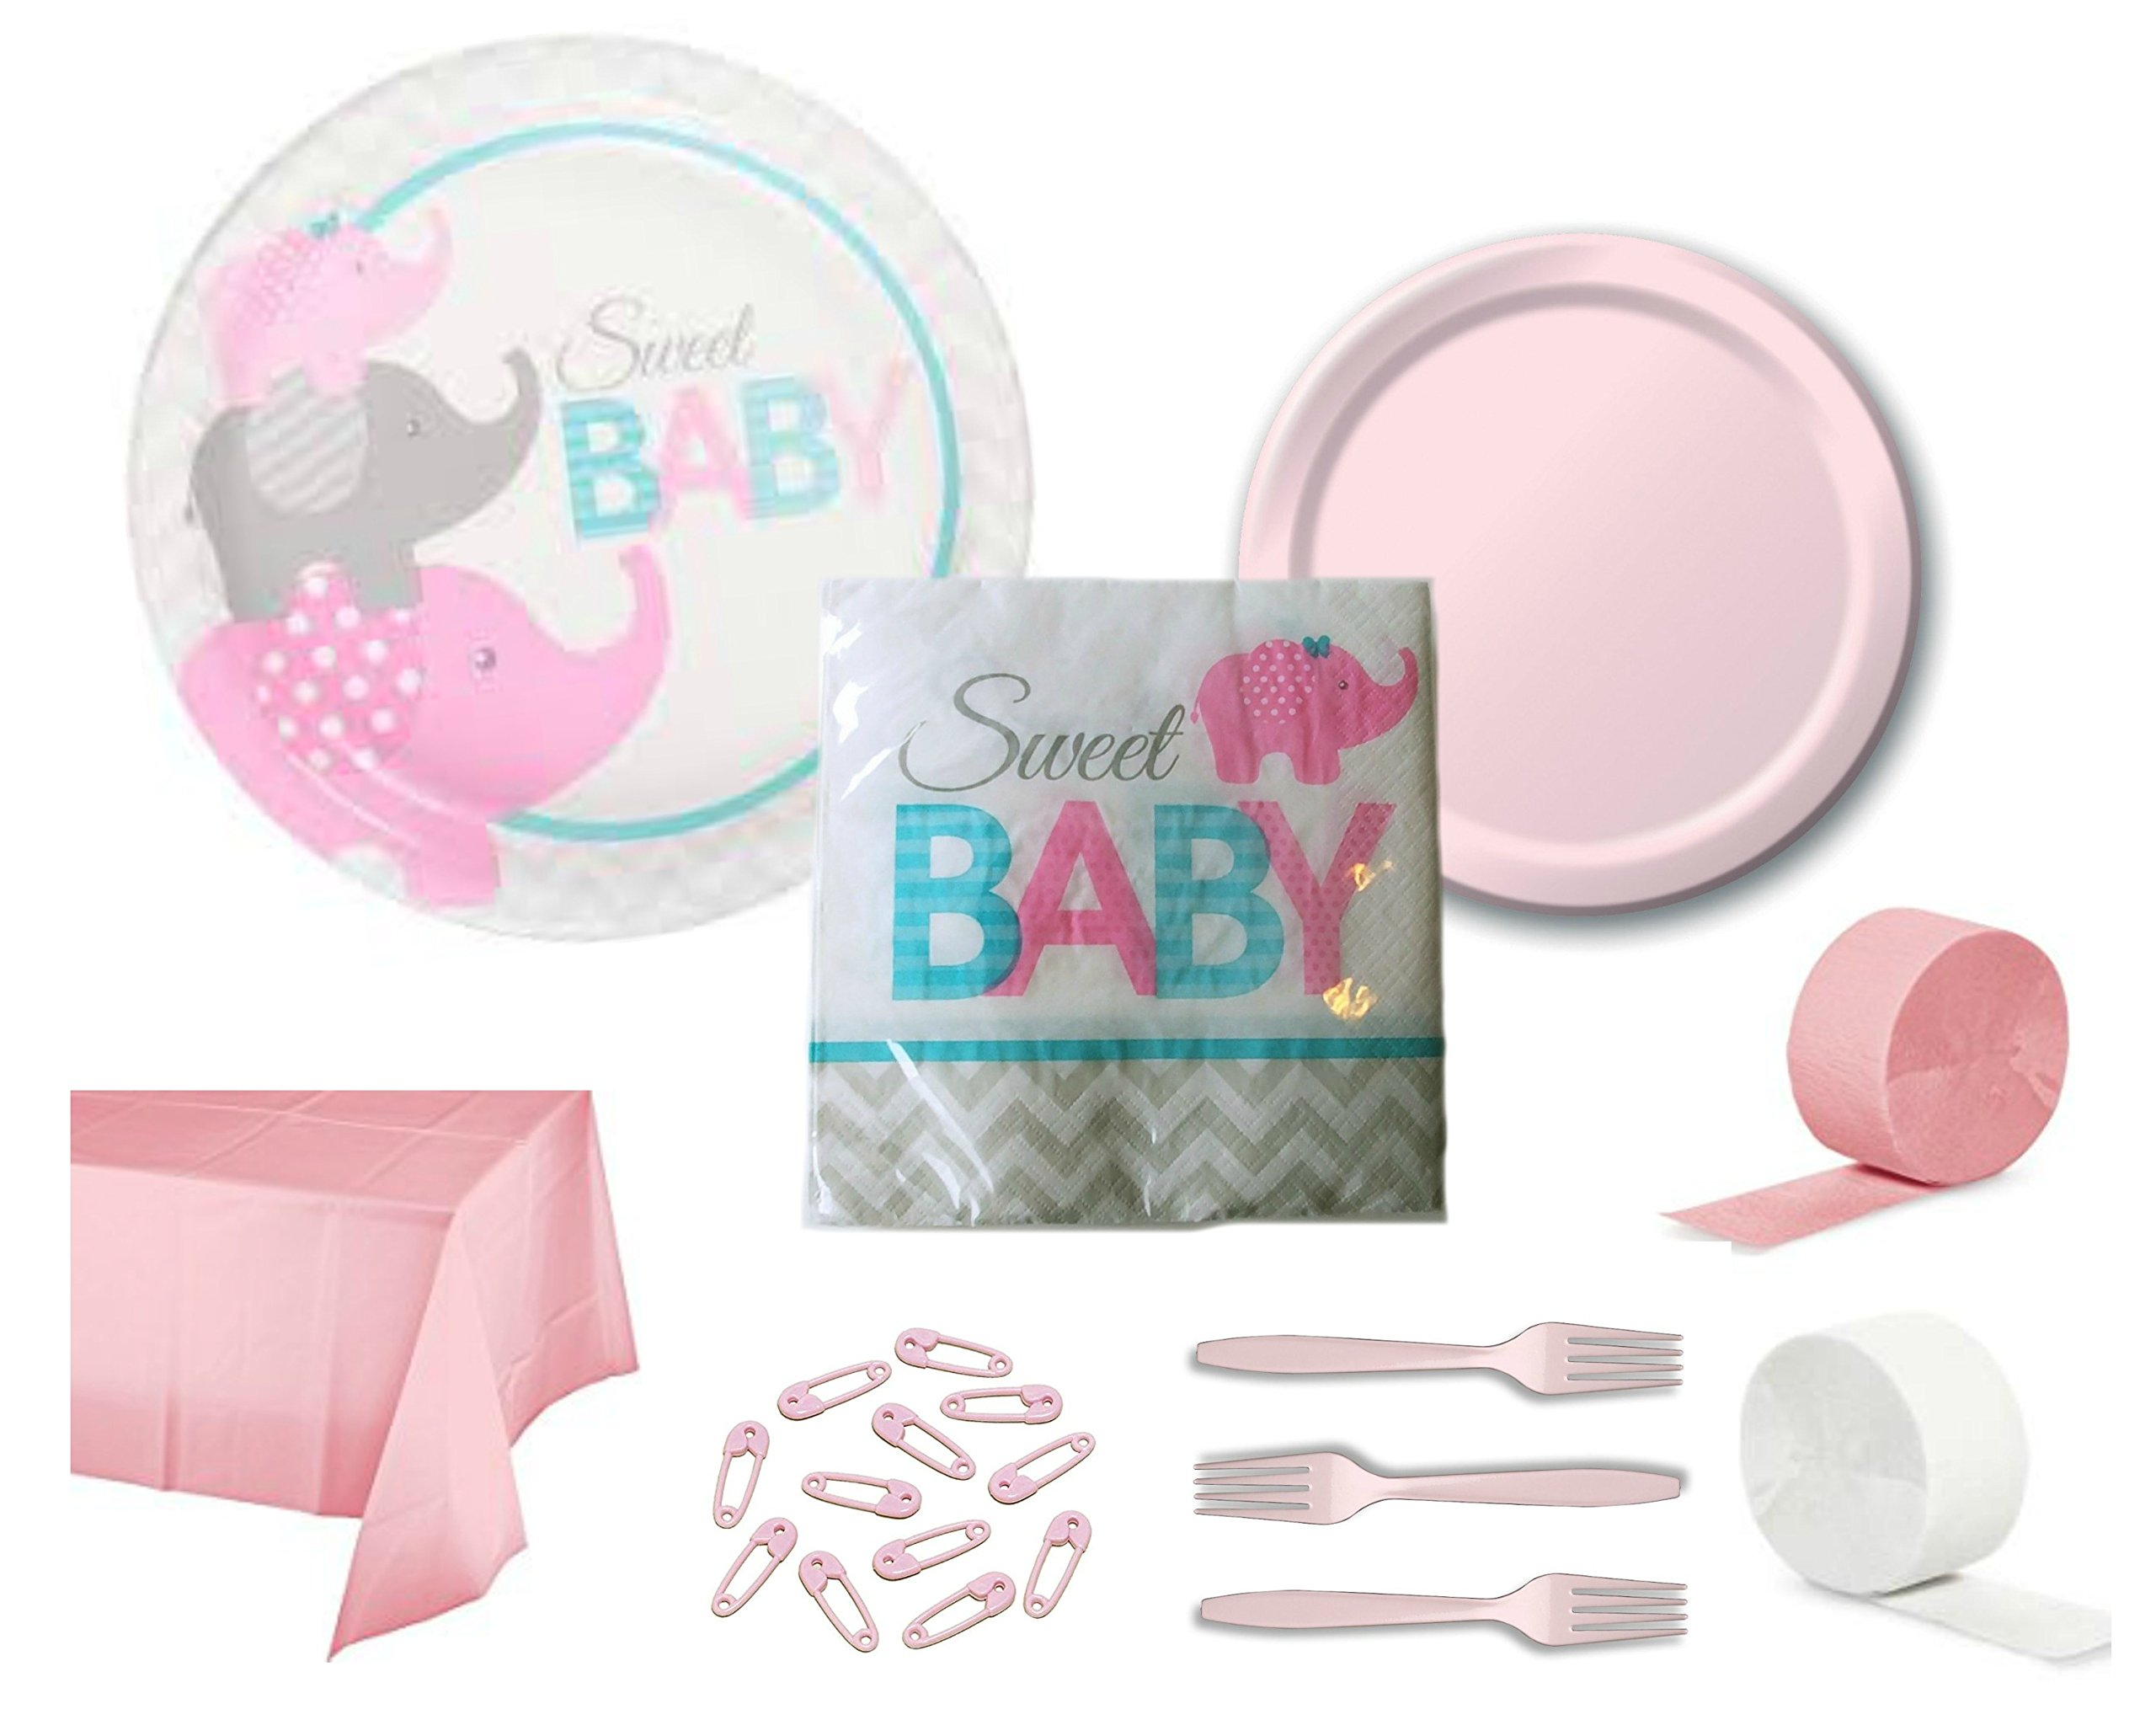 Pink Elephant Girl Sweet Baby Shower Party Supply Bundle for 24 Guests - Includes Plates, Napkins, Tablecover, Forks, Streamers and Safety Pin Cake Toppers